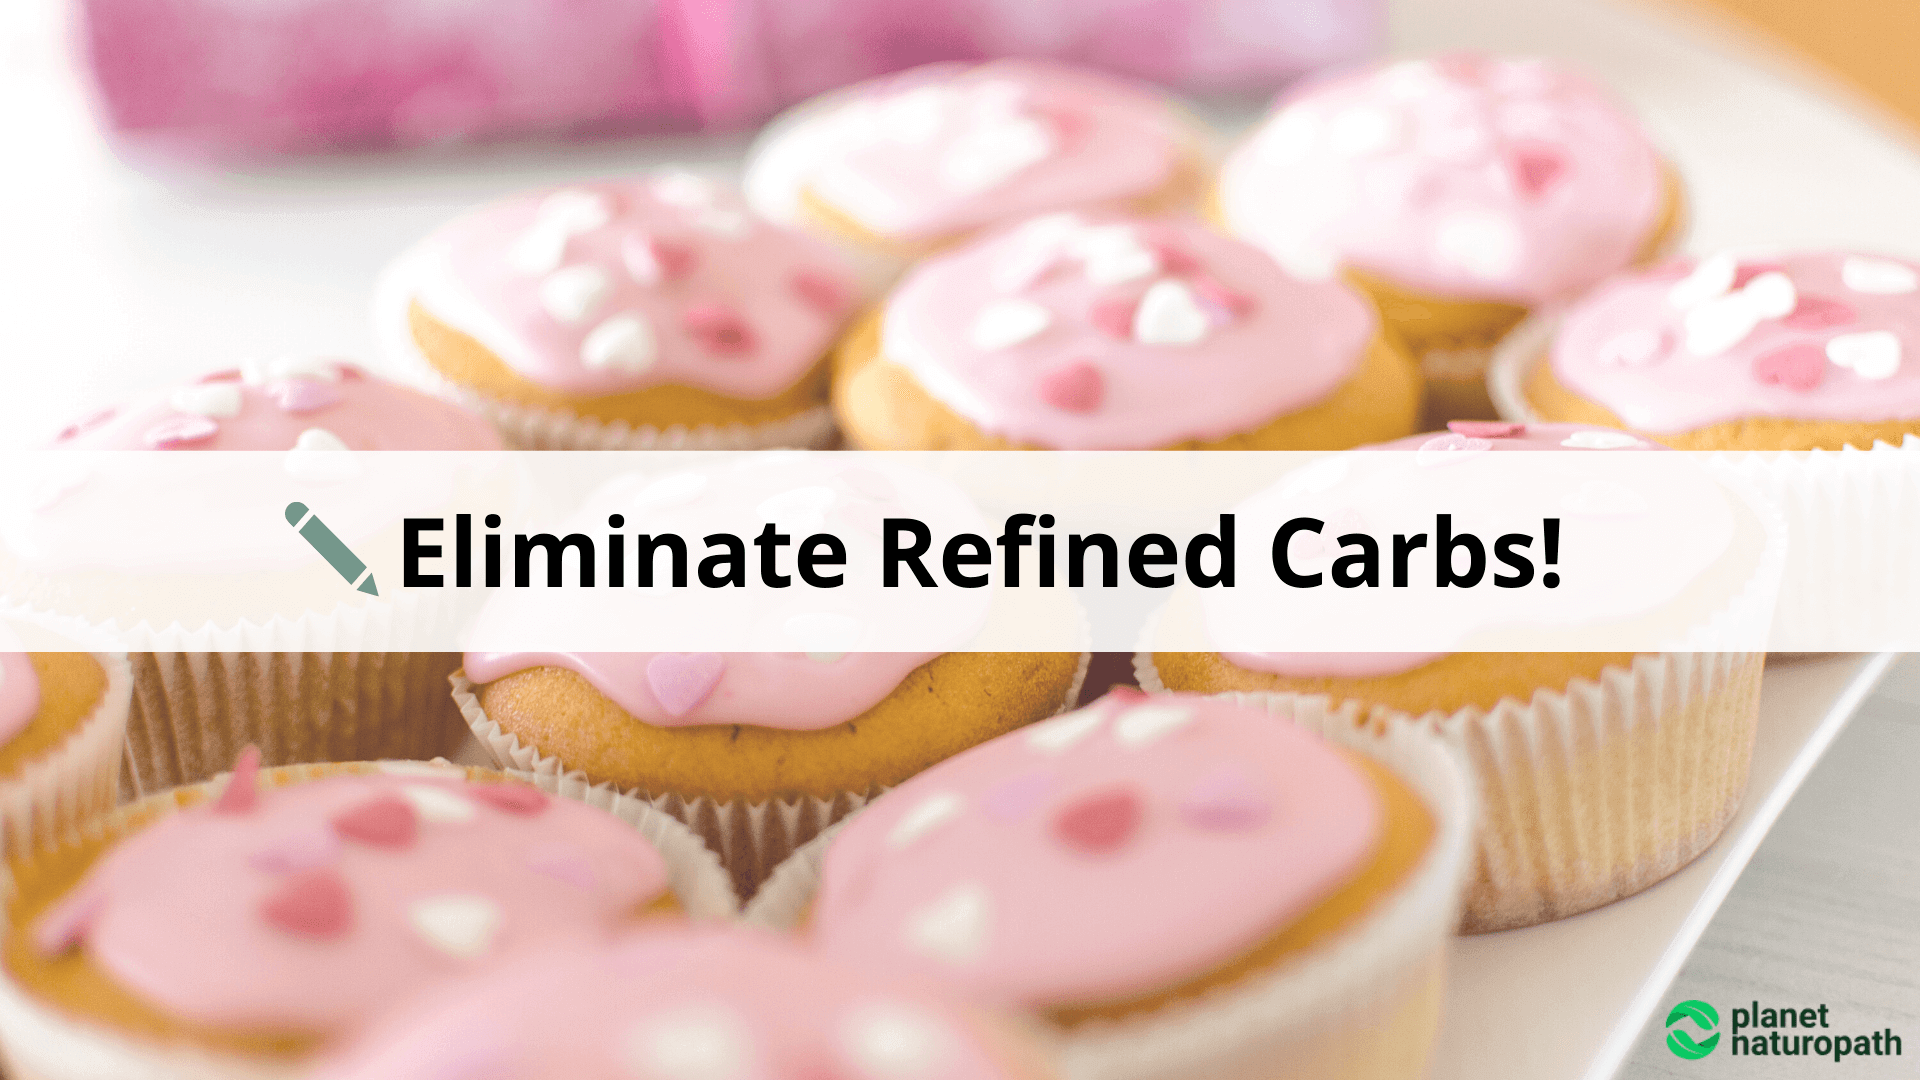 Eliminate-Refined-Carbs